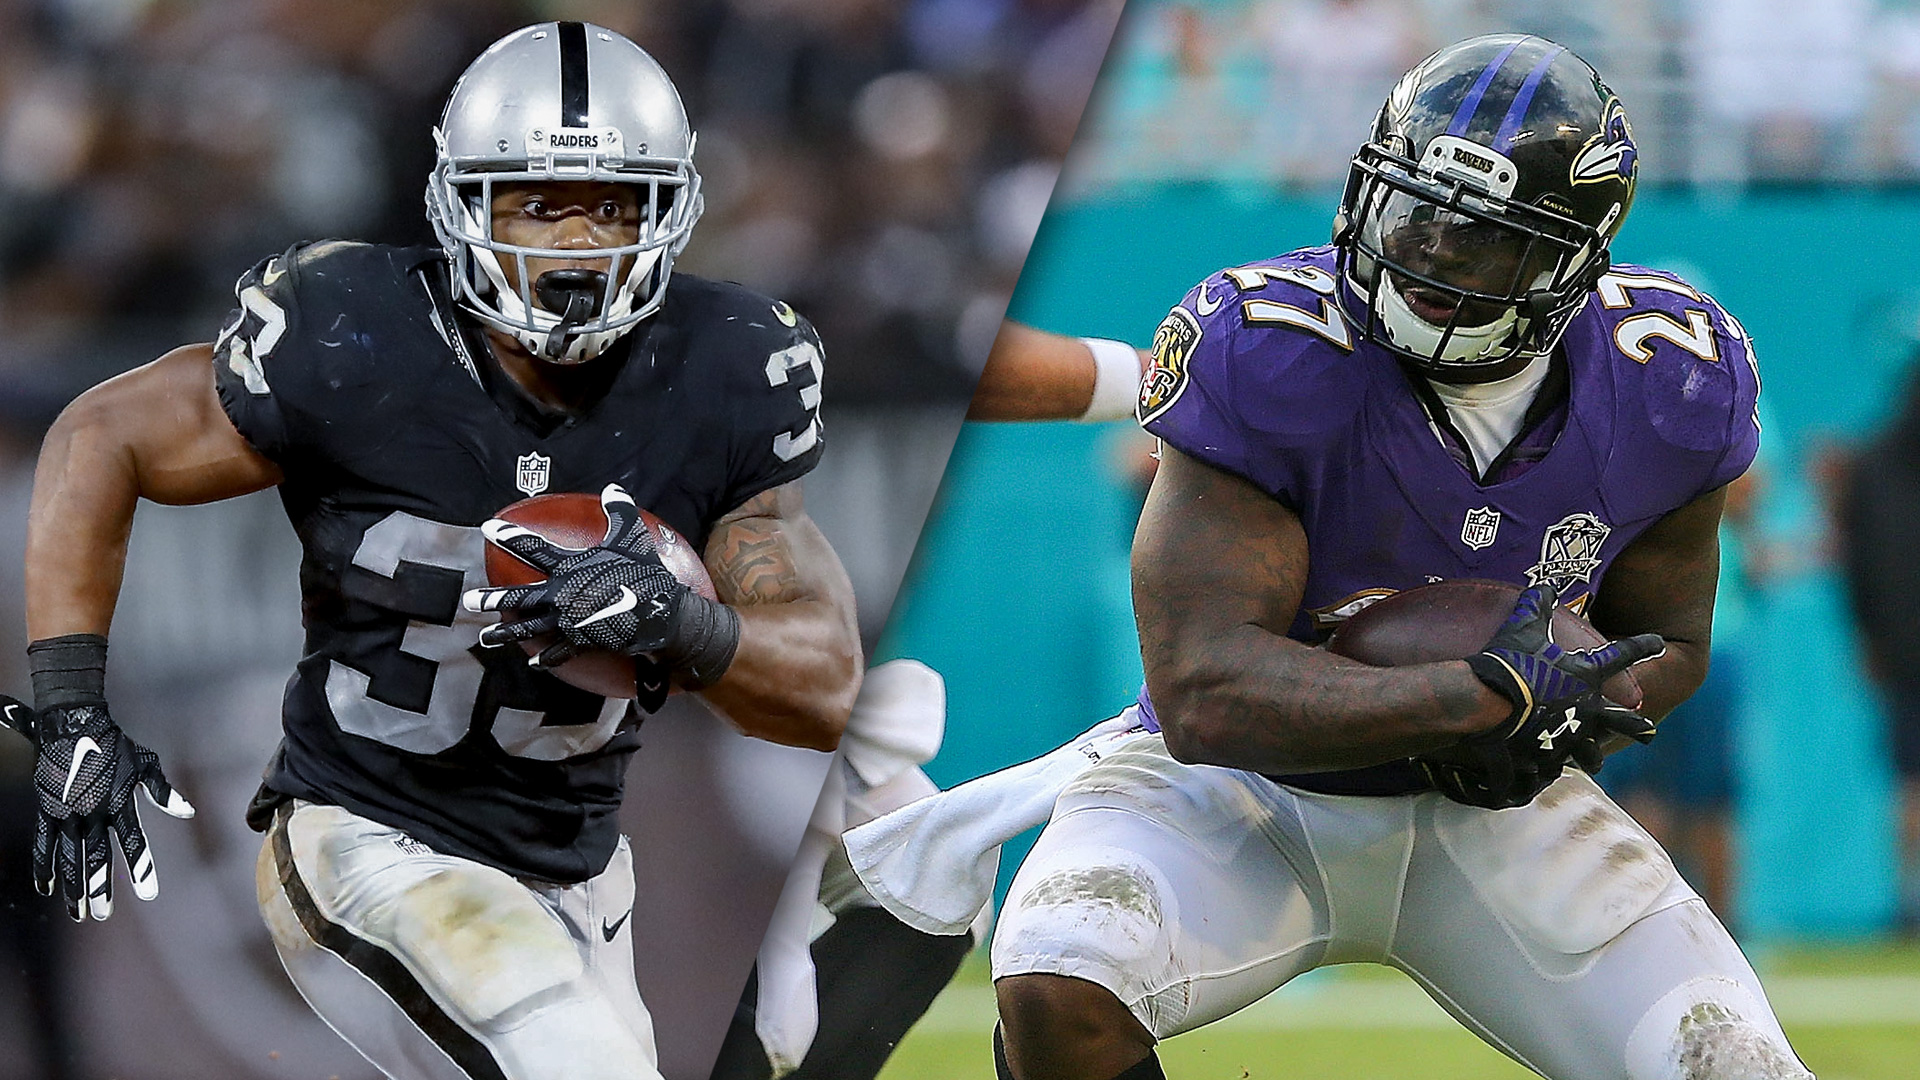 Fantasy Football Waiver Wire: Ravens RB depth chart, other handcuffs ...